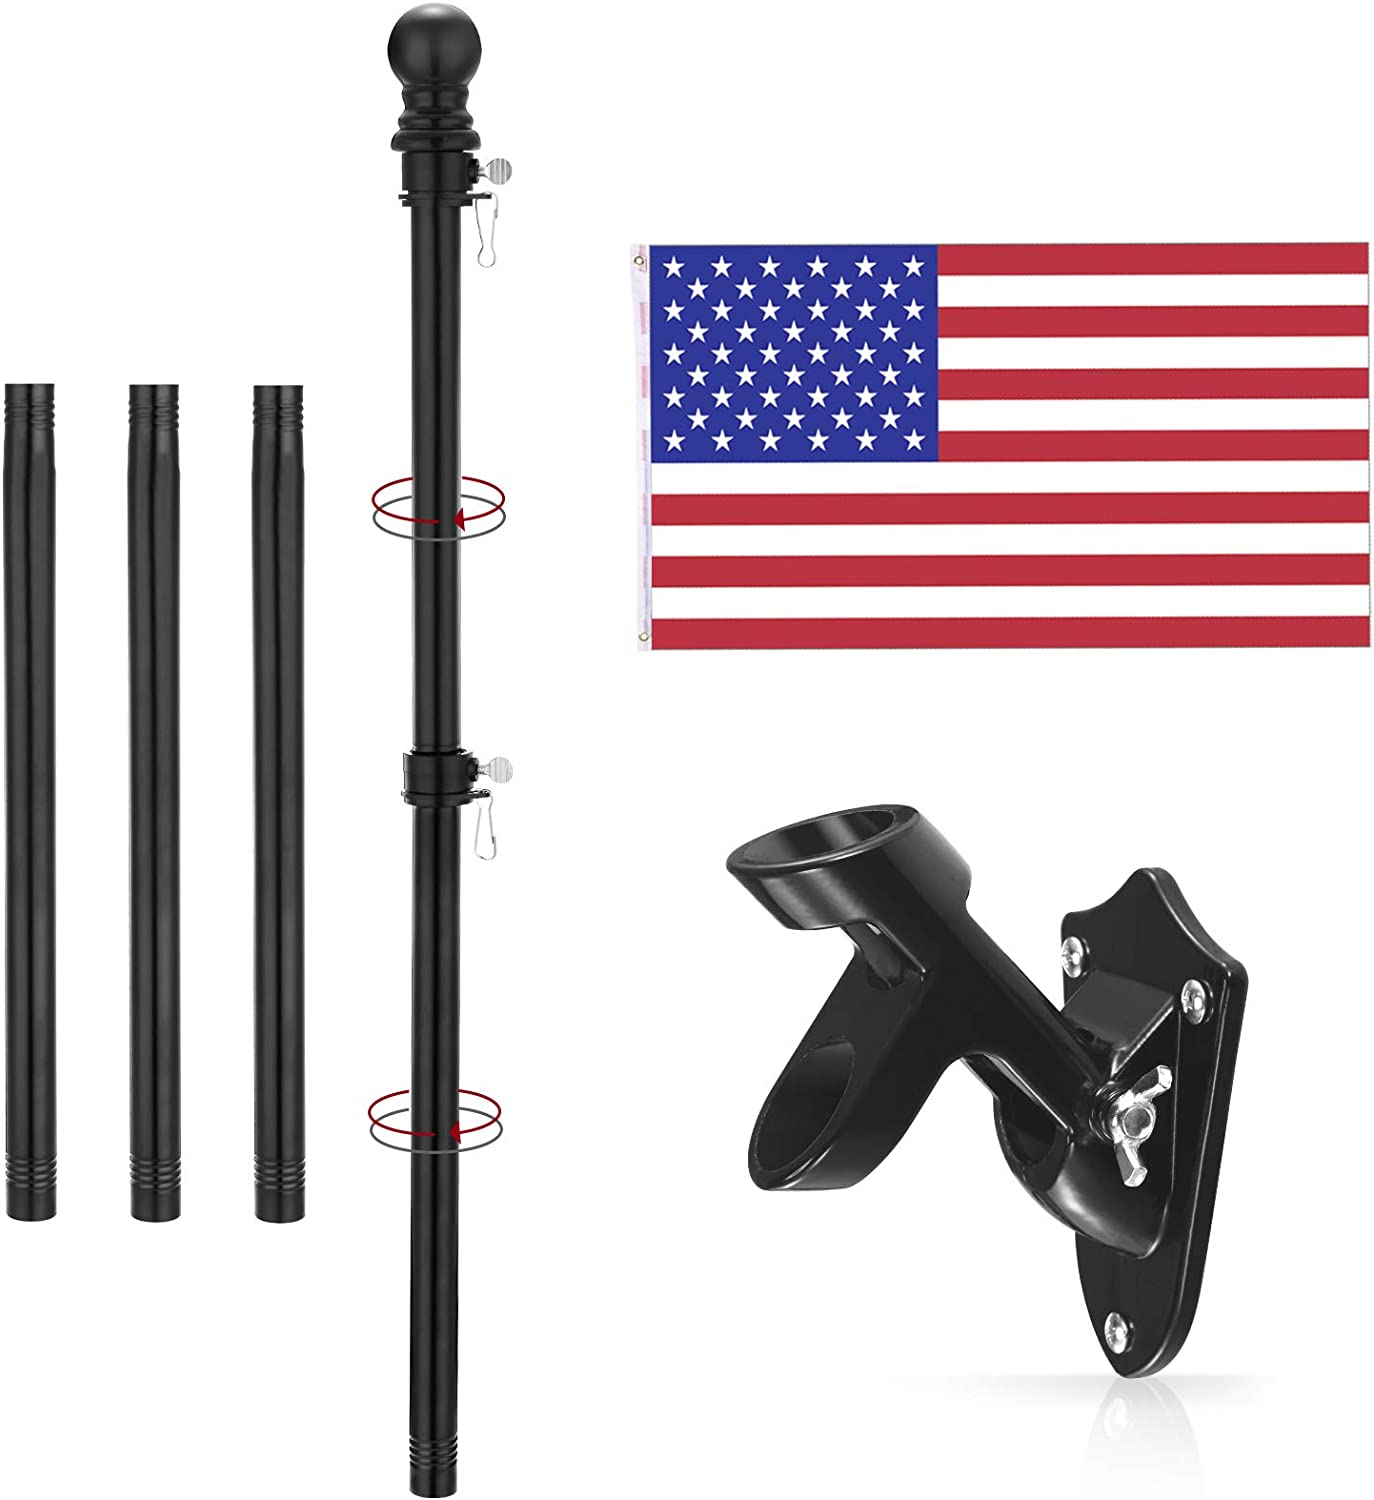 Yeesun Flag Pole Kit,6 Foot American Flag Pole & Bracket-Flagpoles for 3 x 5 Flags Holder for Home Porch & Outdoor,Tangle Free and Wall Mount Metal Flag Pole with Flag (Black)